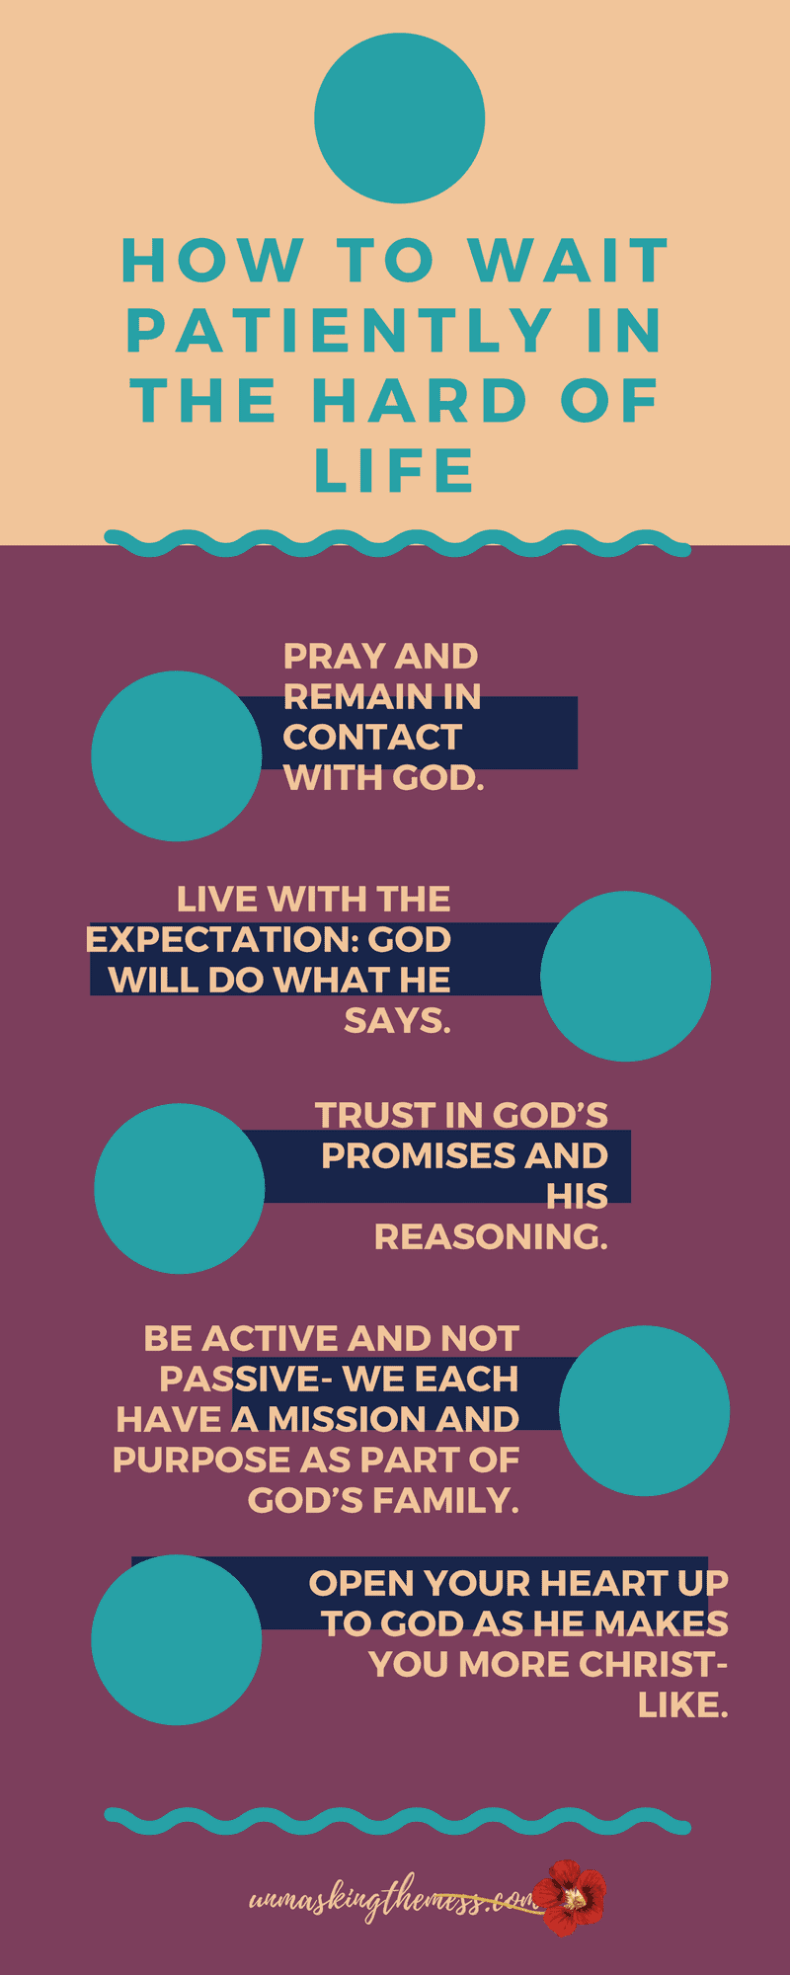 How to Wait Well in the Hard of Life. We want to run ahead of God so many times. We can only be truly effective when we learn to trust God when we're waiting for answers. #patiently #waitingonGod #tiredofwaiting #waitinginfaith #Jesus